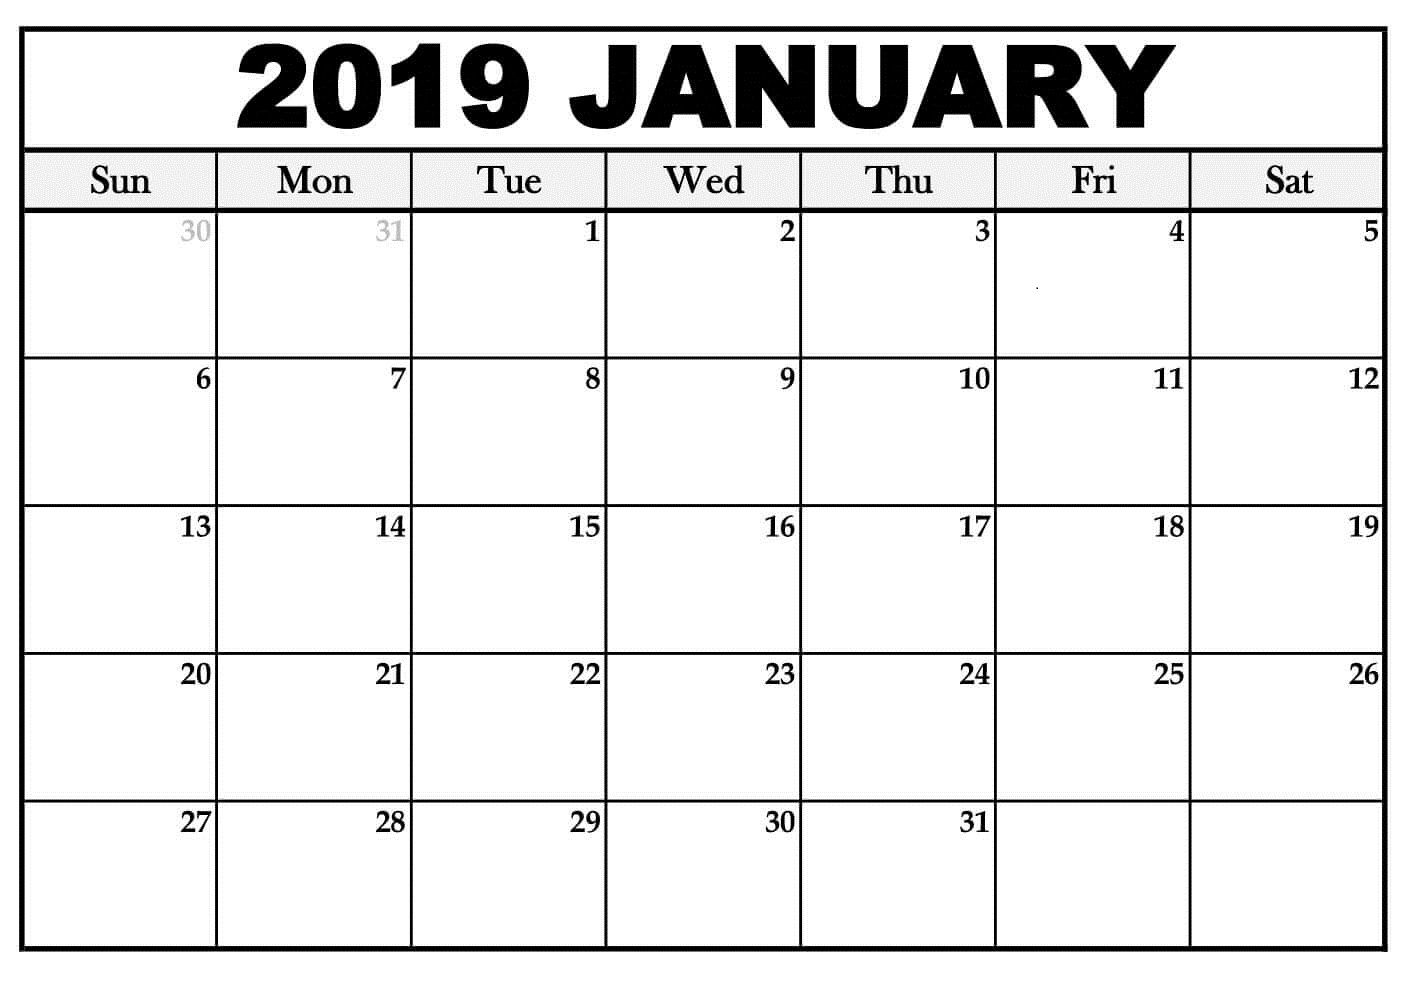 January 2019 Calendar Word Template Editable January 2019 Calendar